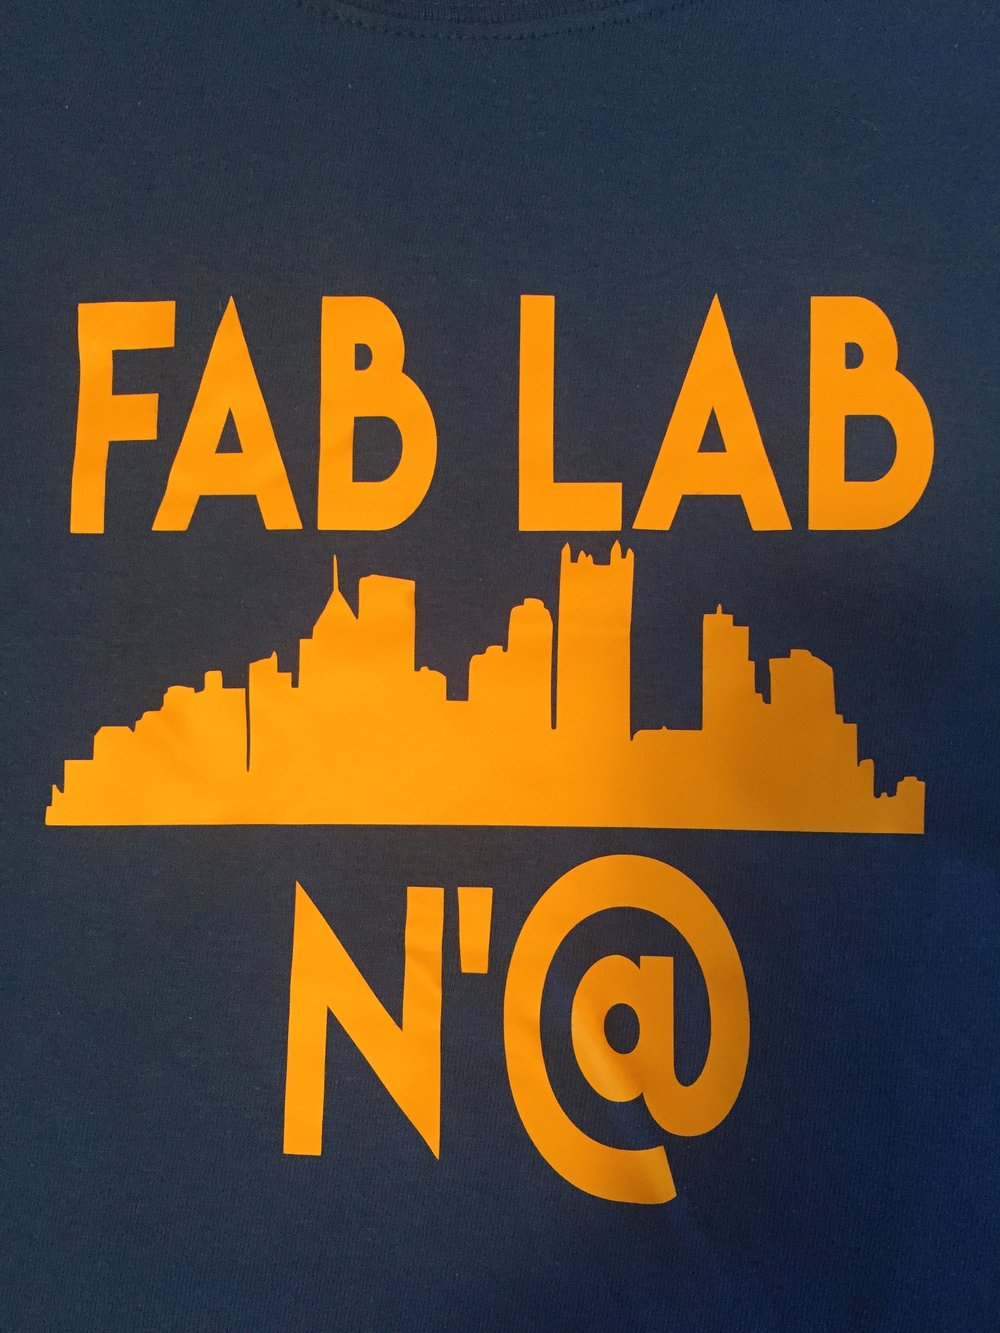 First T-shirt Ben designed at the Fab Lab